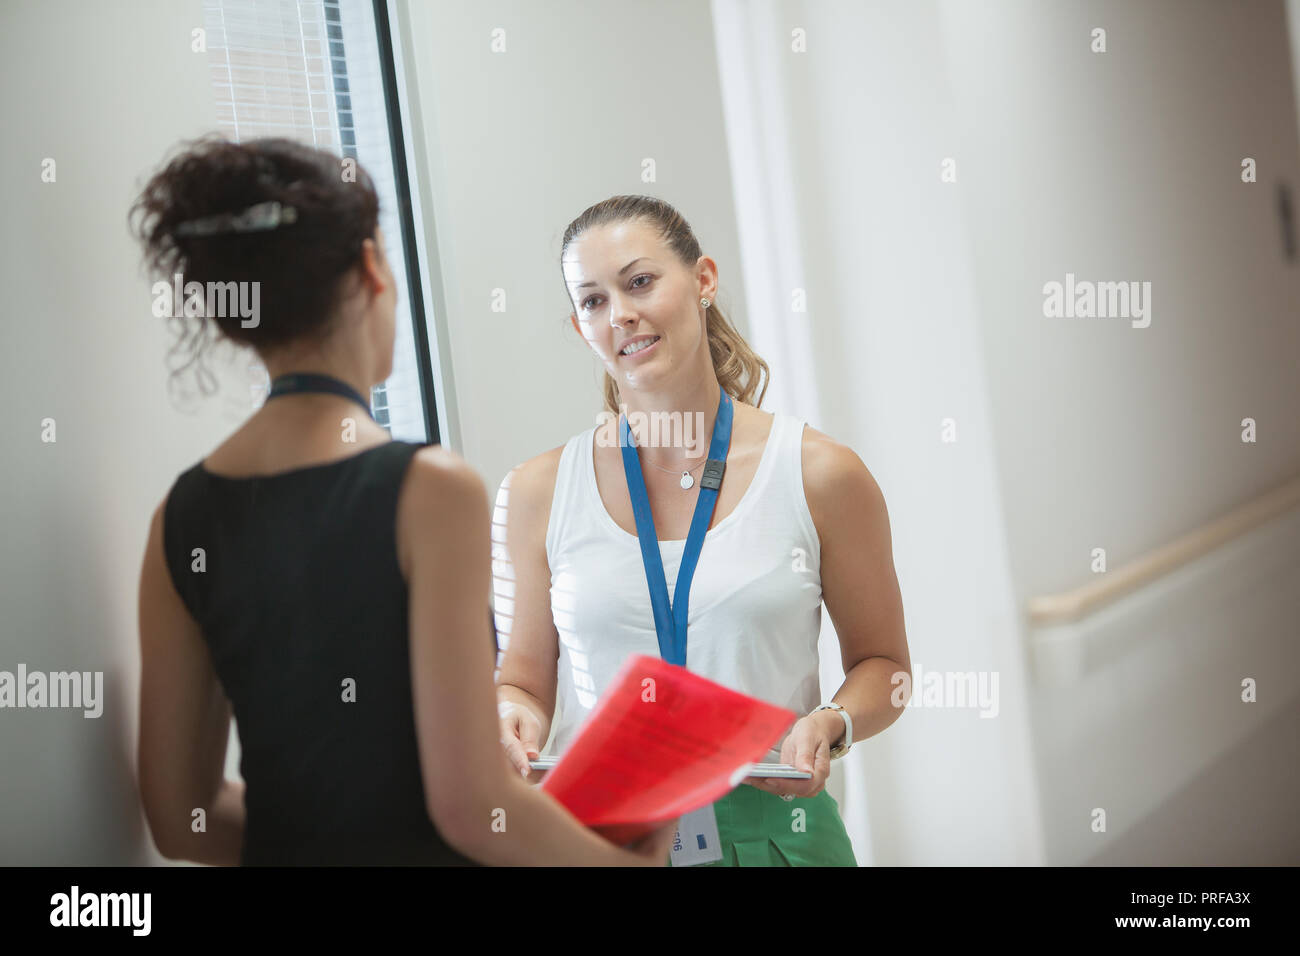 Young ladies in working mode chatting in corridor - Stock Image